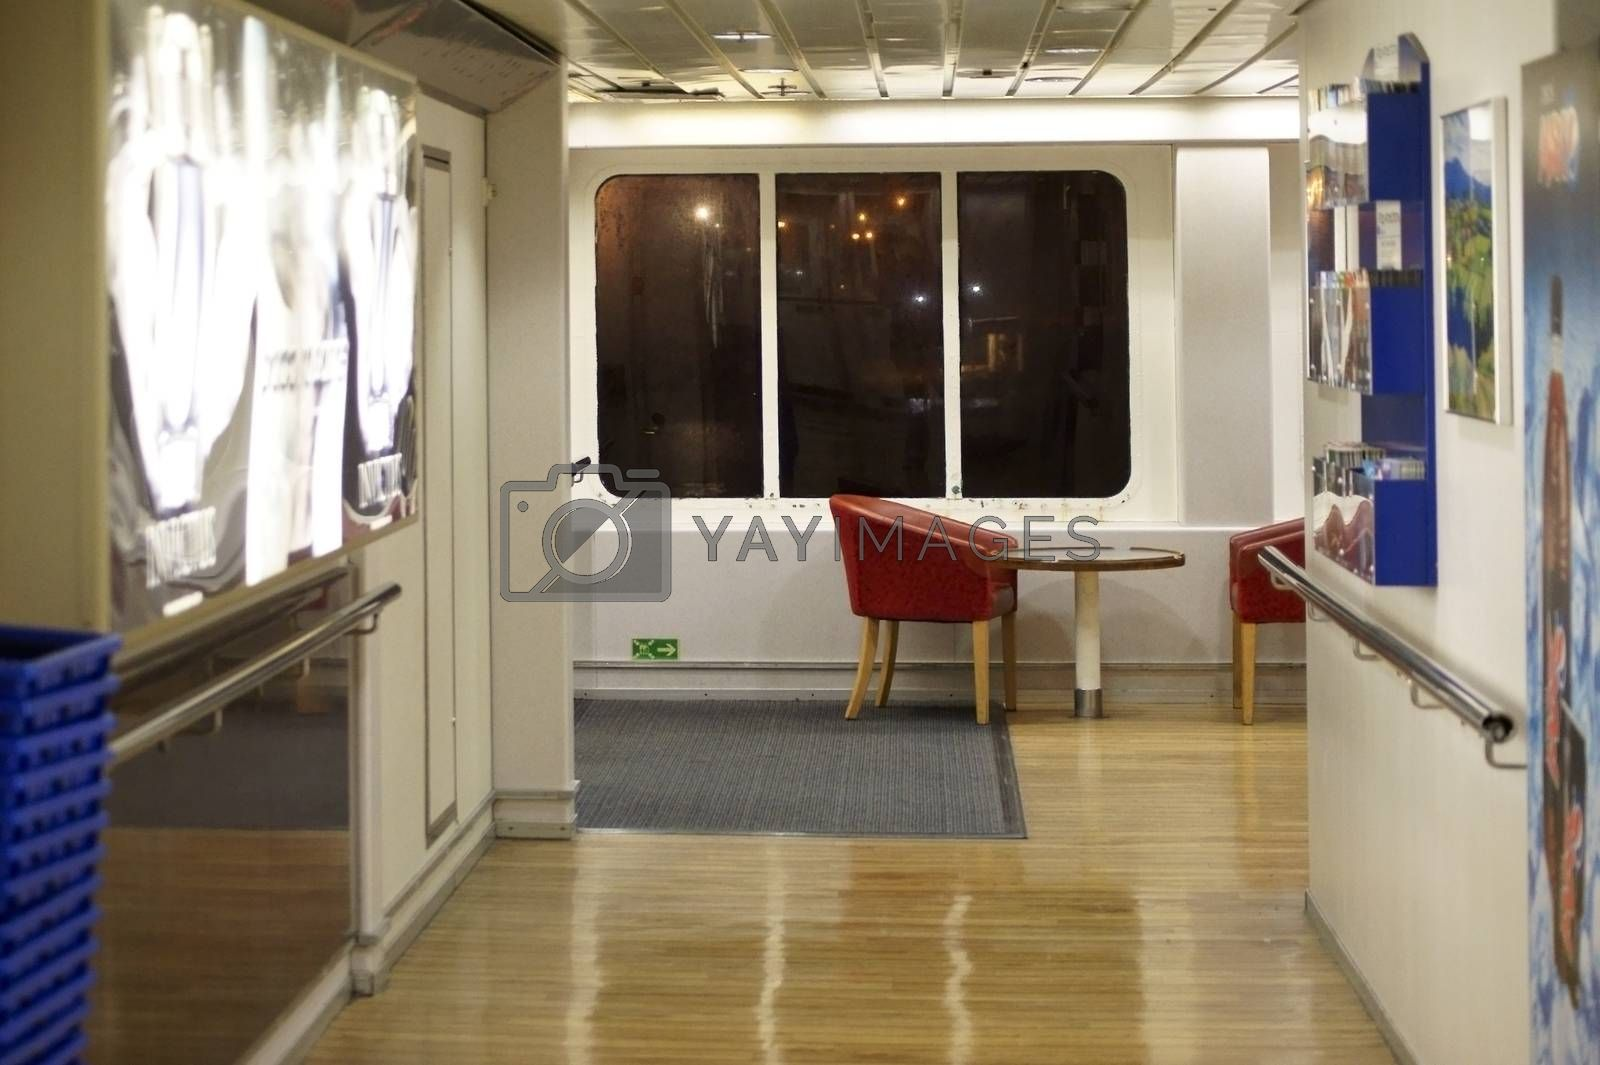 Calais, France - November 27, 2015: Window seats on the ferry between Calais and Dover with a large viewing window on November 27, 2015 in Calais.